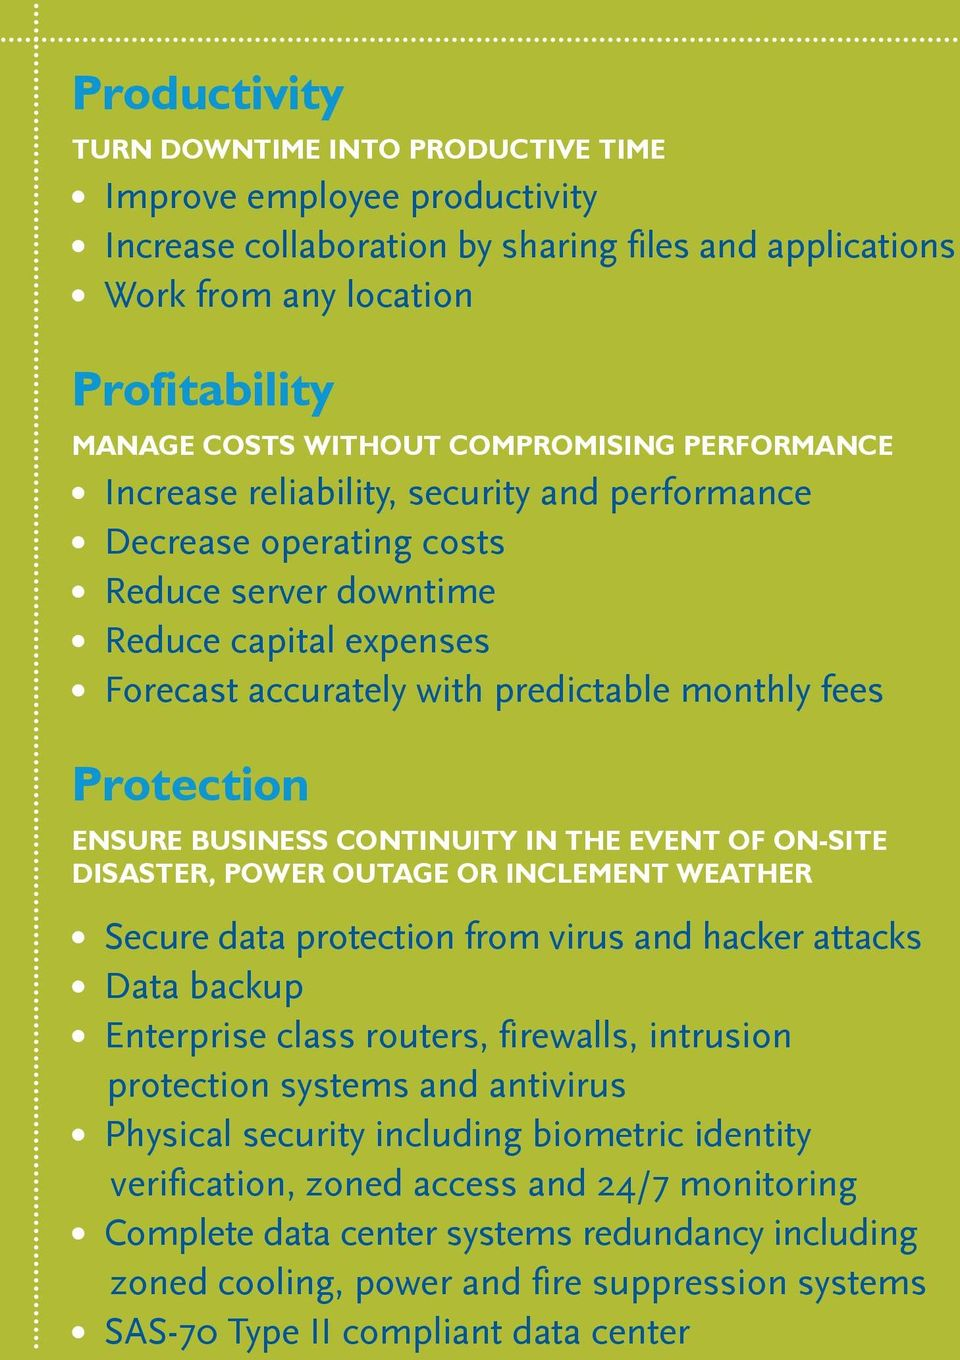 fees Protection ENSURE BUSINESS CONTINUITY IN THE EVENT OF ON-SITE DISASTER, POWER OUTAGE OR INCLEMENT WEATHER l Secure data protection from virus and hacker attacks l Data backup l Enterprise class